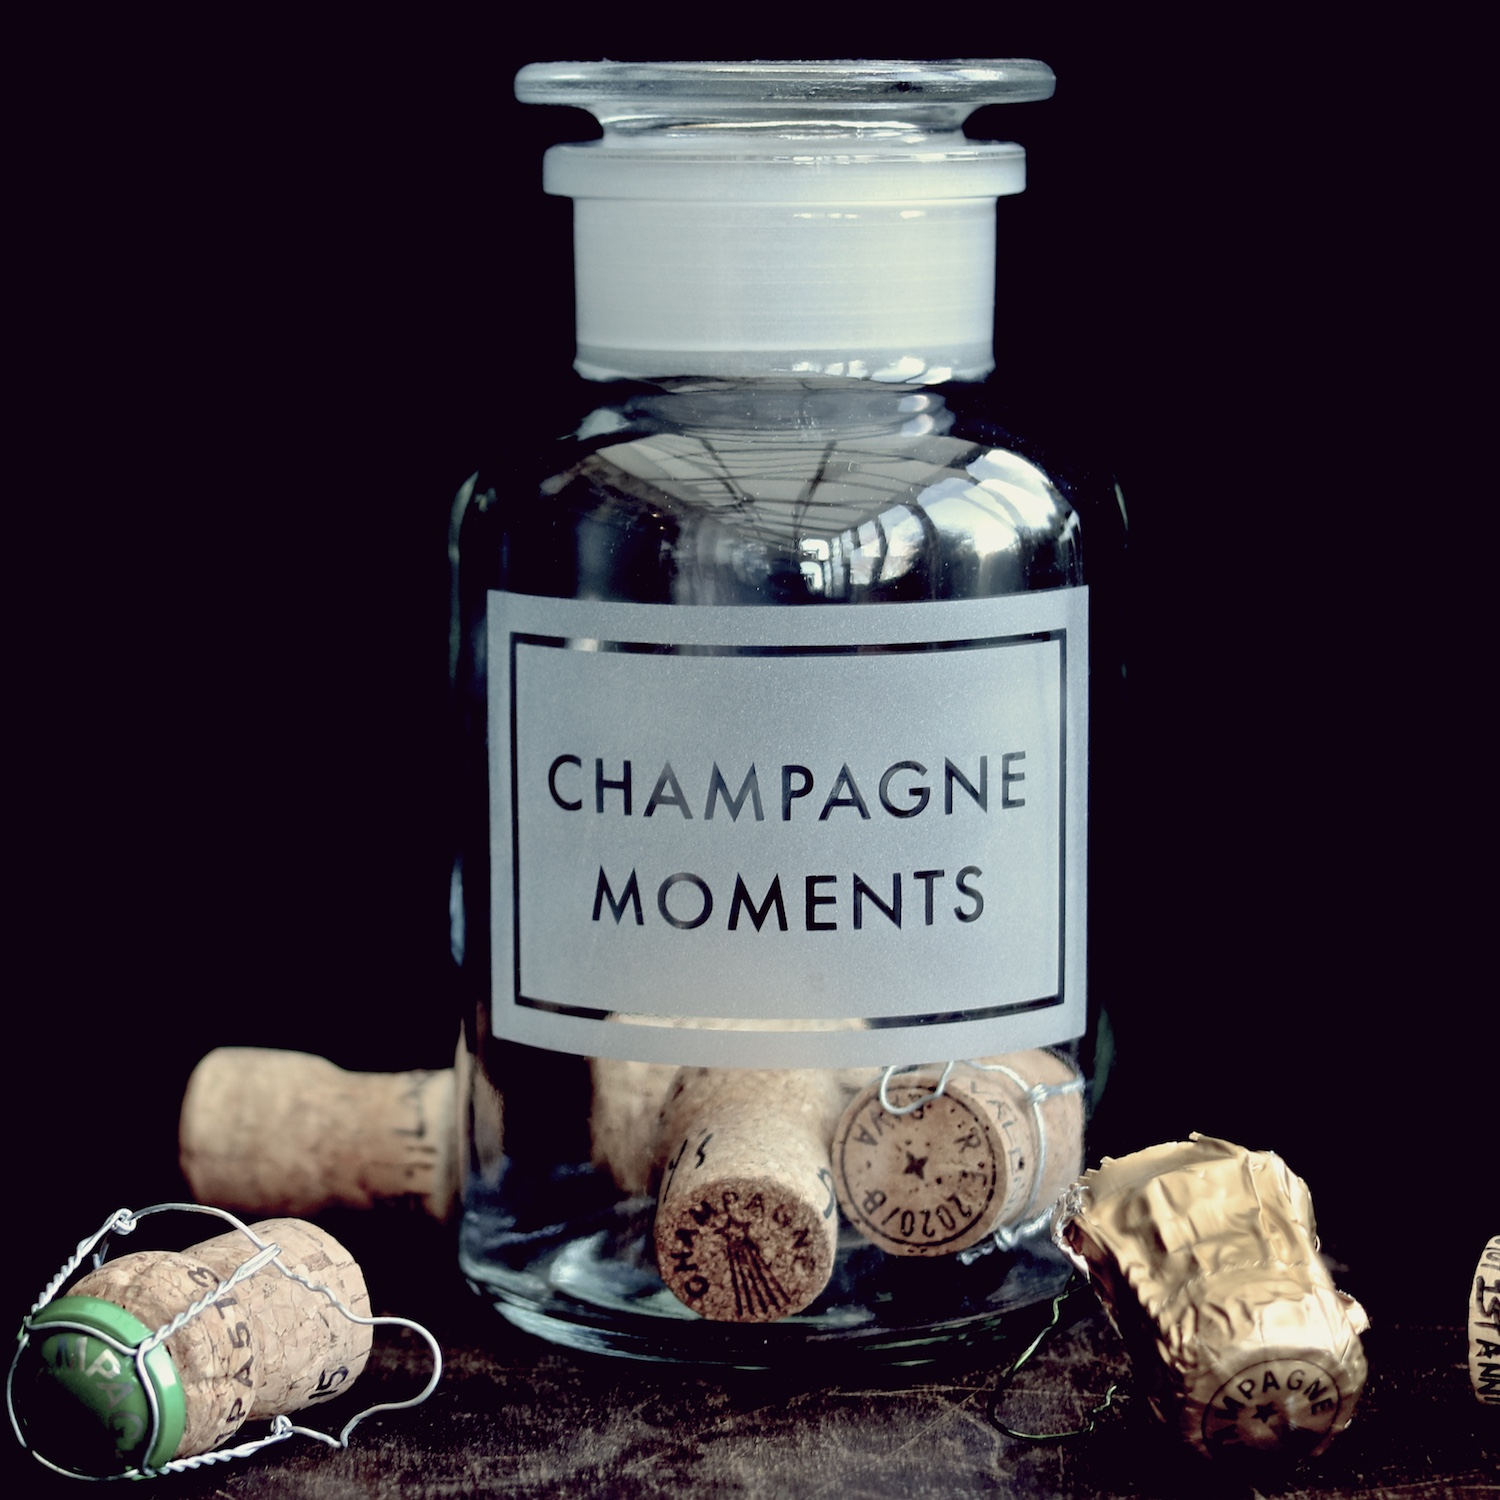 champagne-moments-etched-apothecary-jar-vinegar-and-brown-paper.jpg